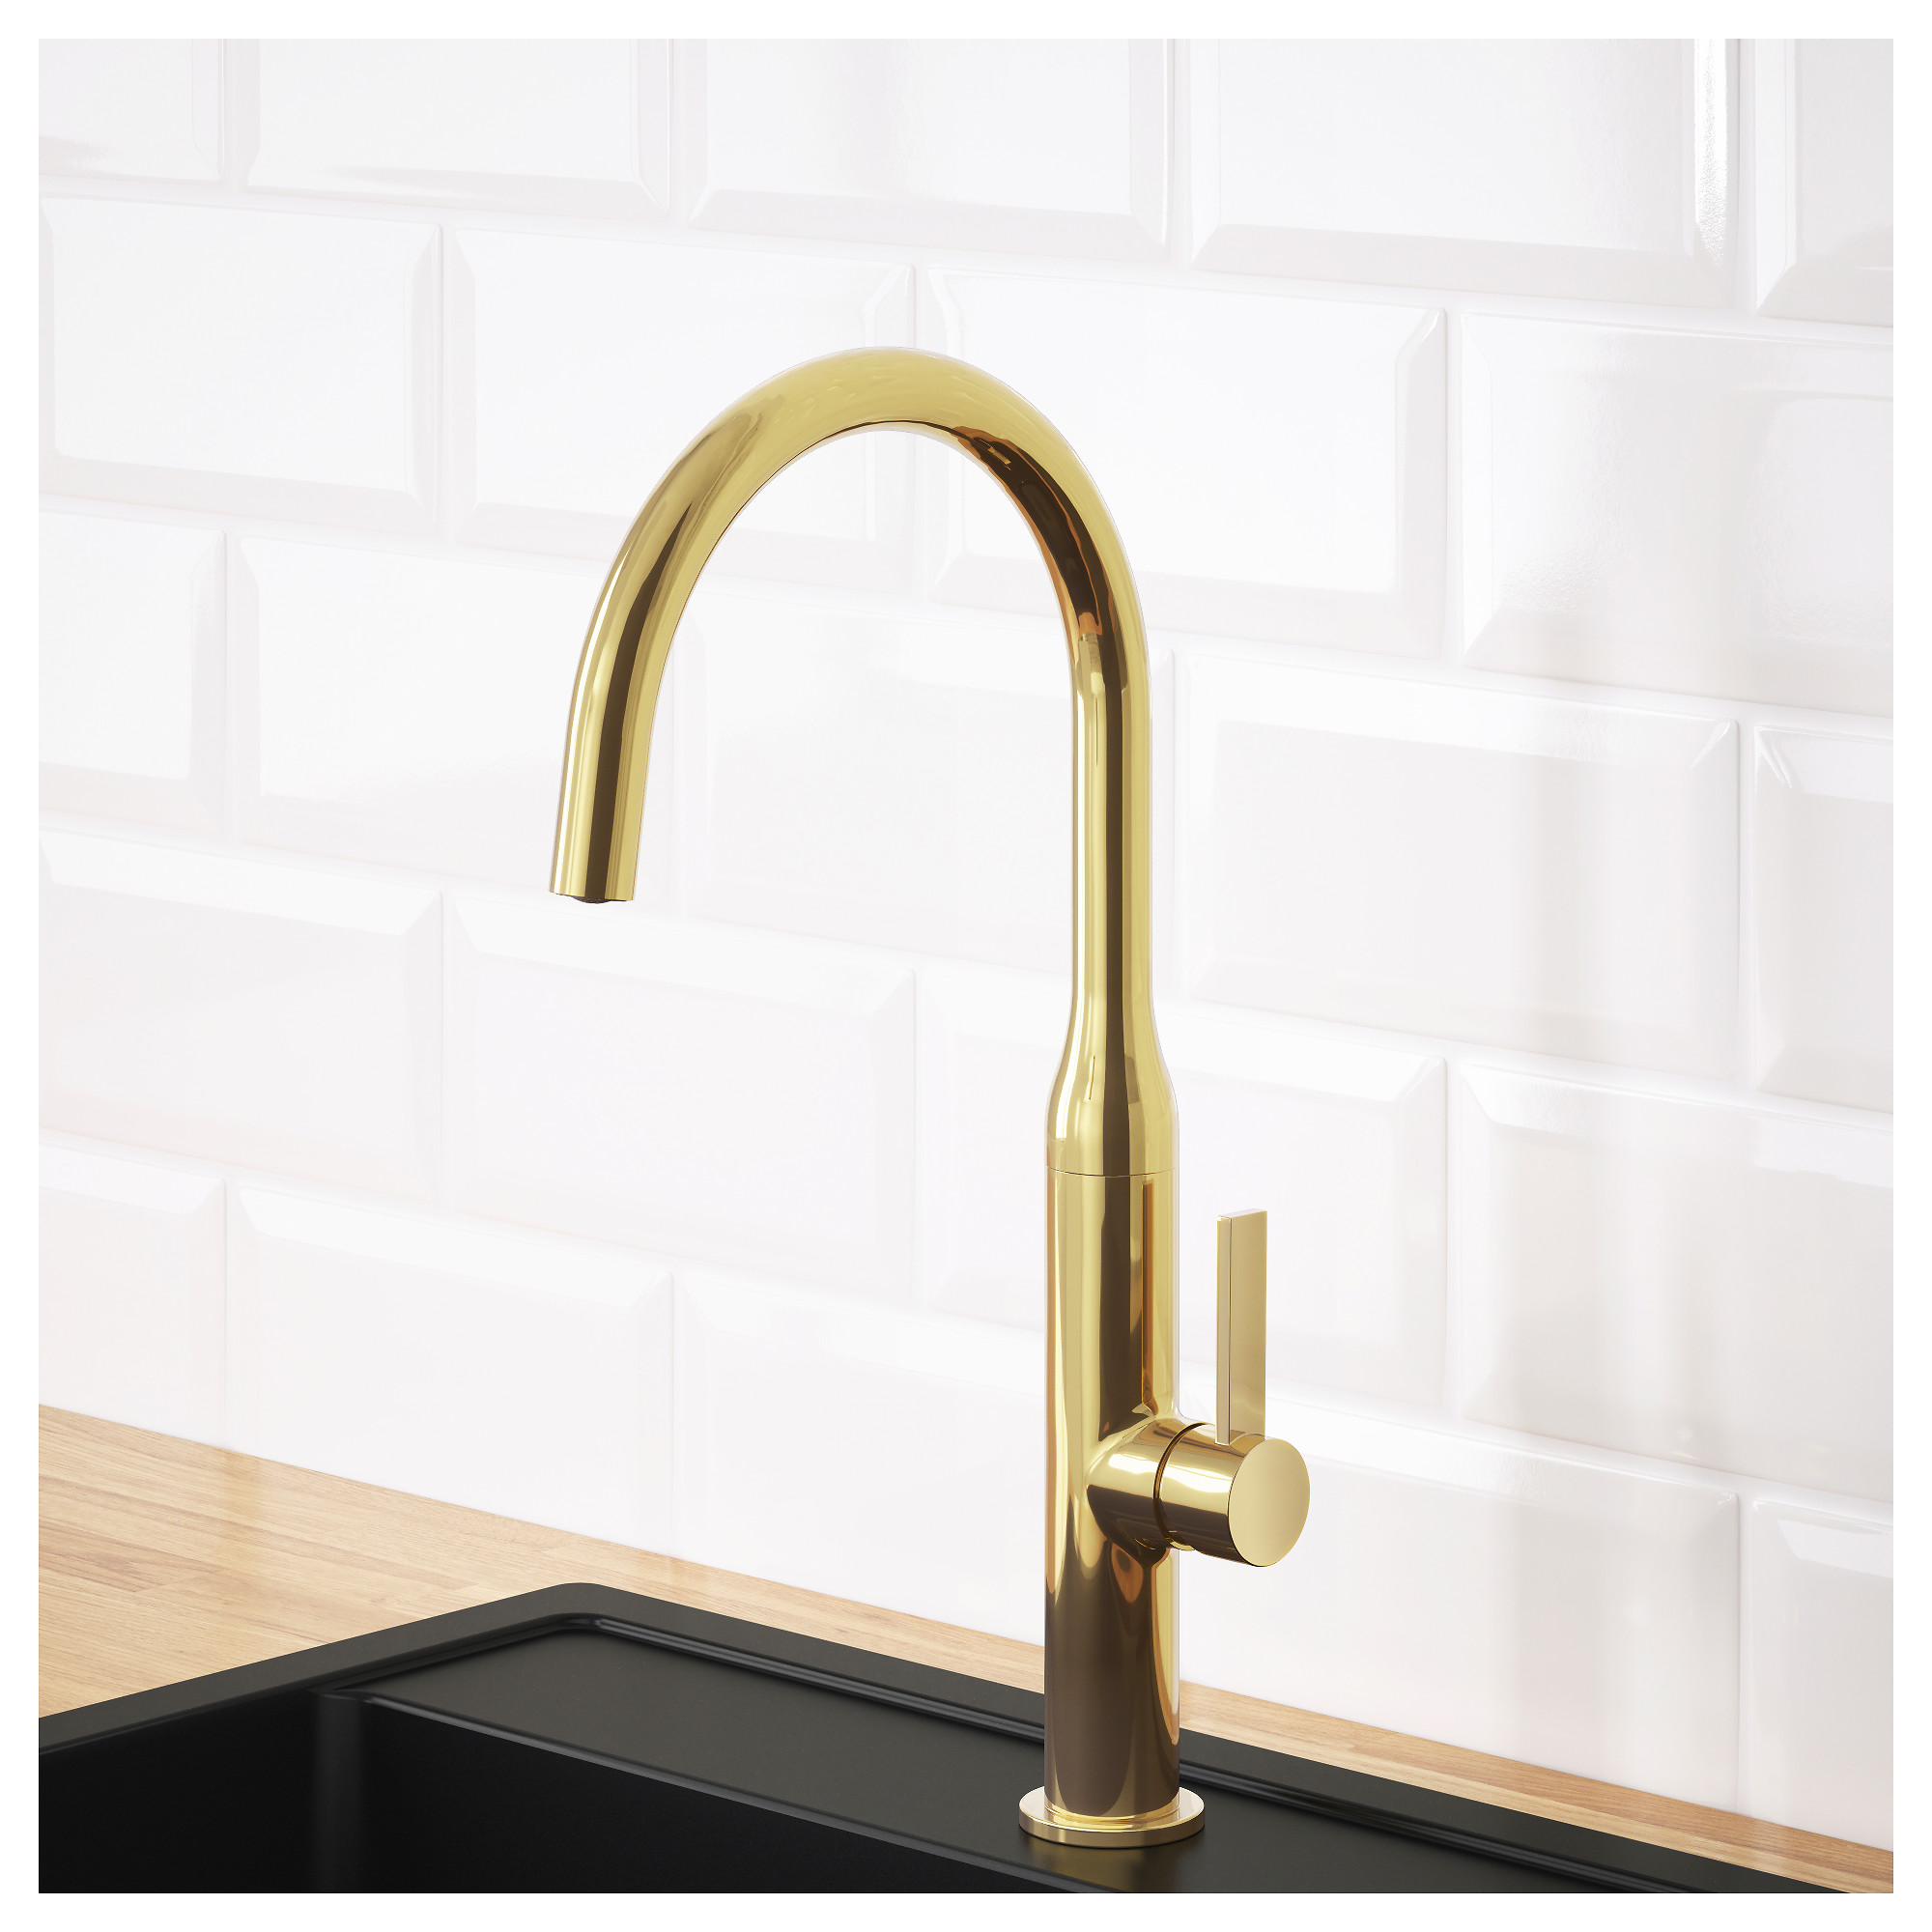 mount roman steel shower antique wall faucets faucet matching stainless bathtub brass delta tub and filler oil rubbed bronze sink waterfall lavatory